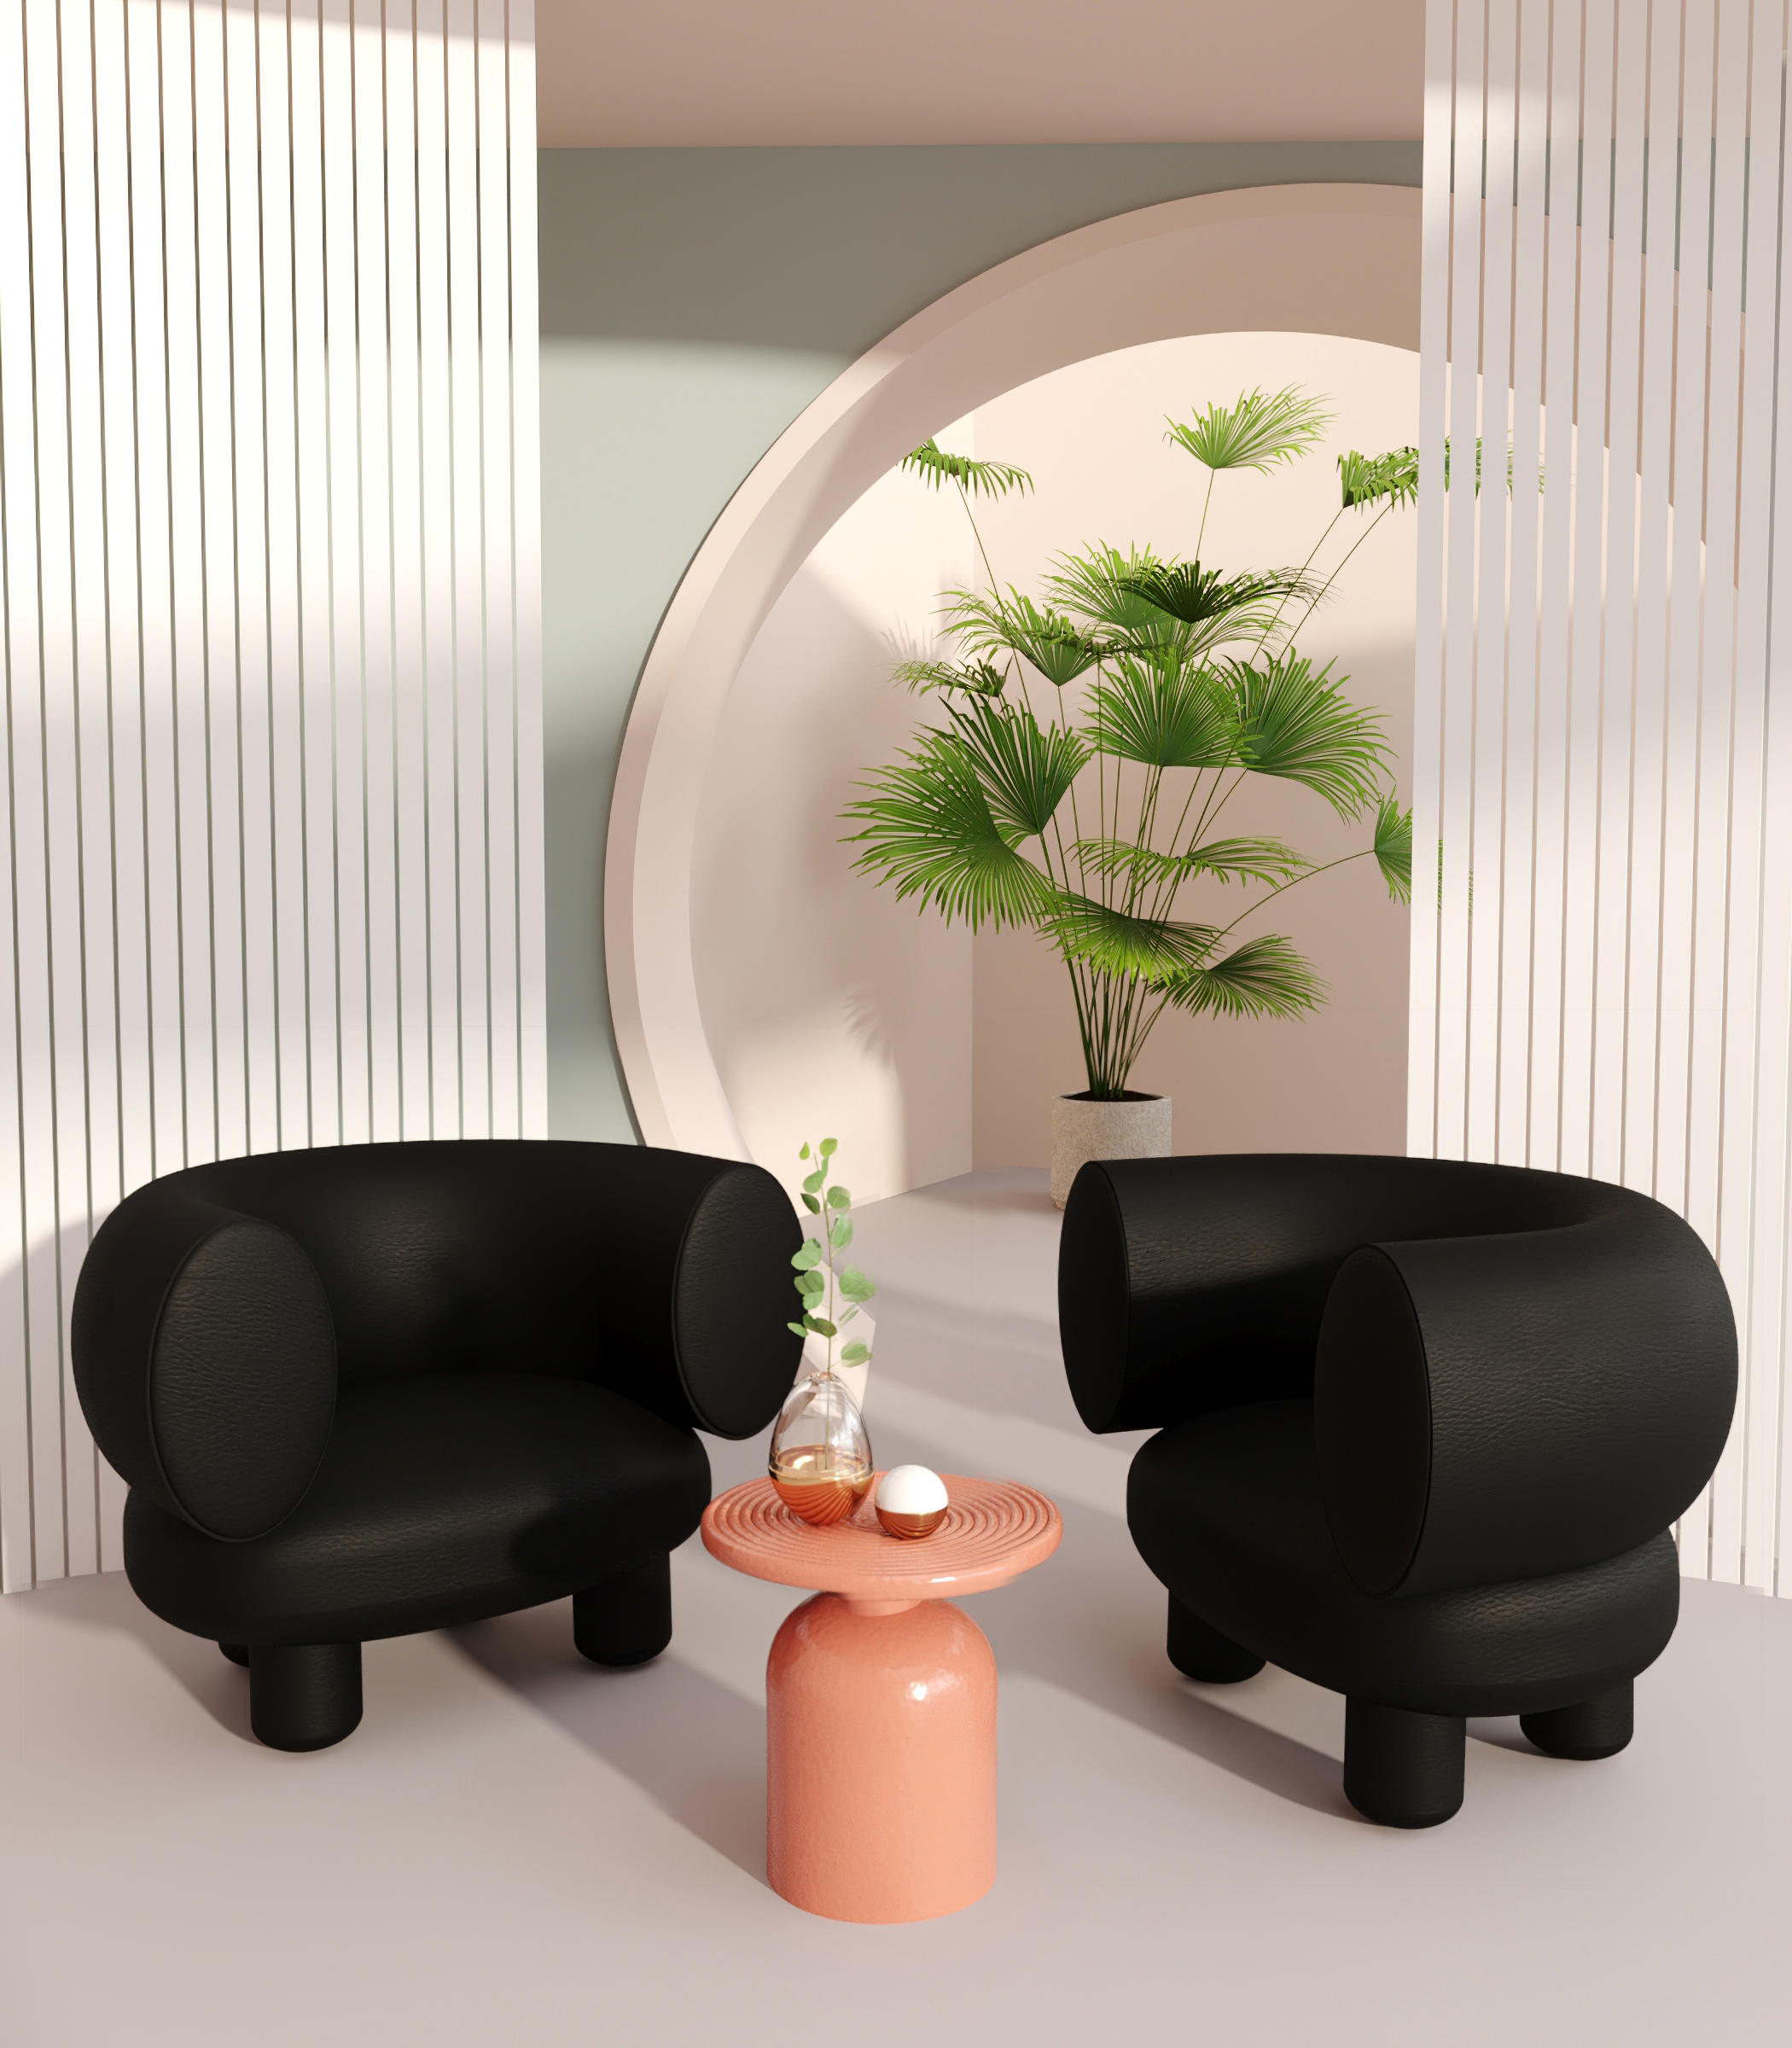 Sumo Armchair by Maison Dada